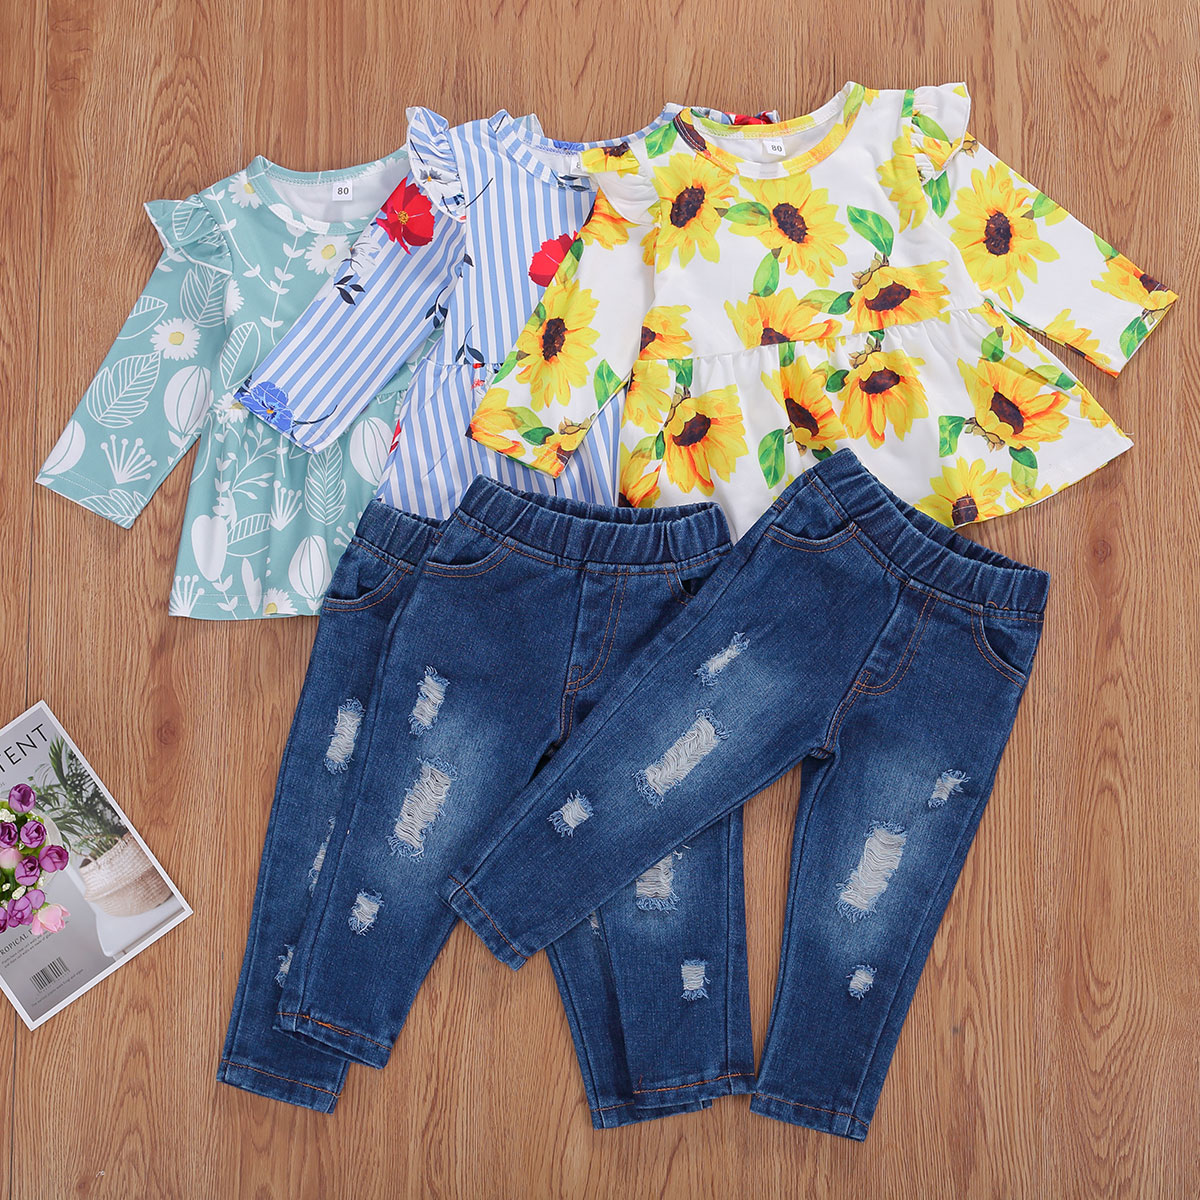 2020 Brand New Autumn Clothes Set For Girls Print Long Sleeve Pullover Top Denim Long Pants Outfit Set Leather Bag